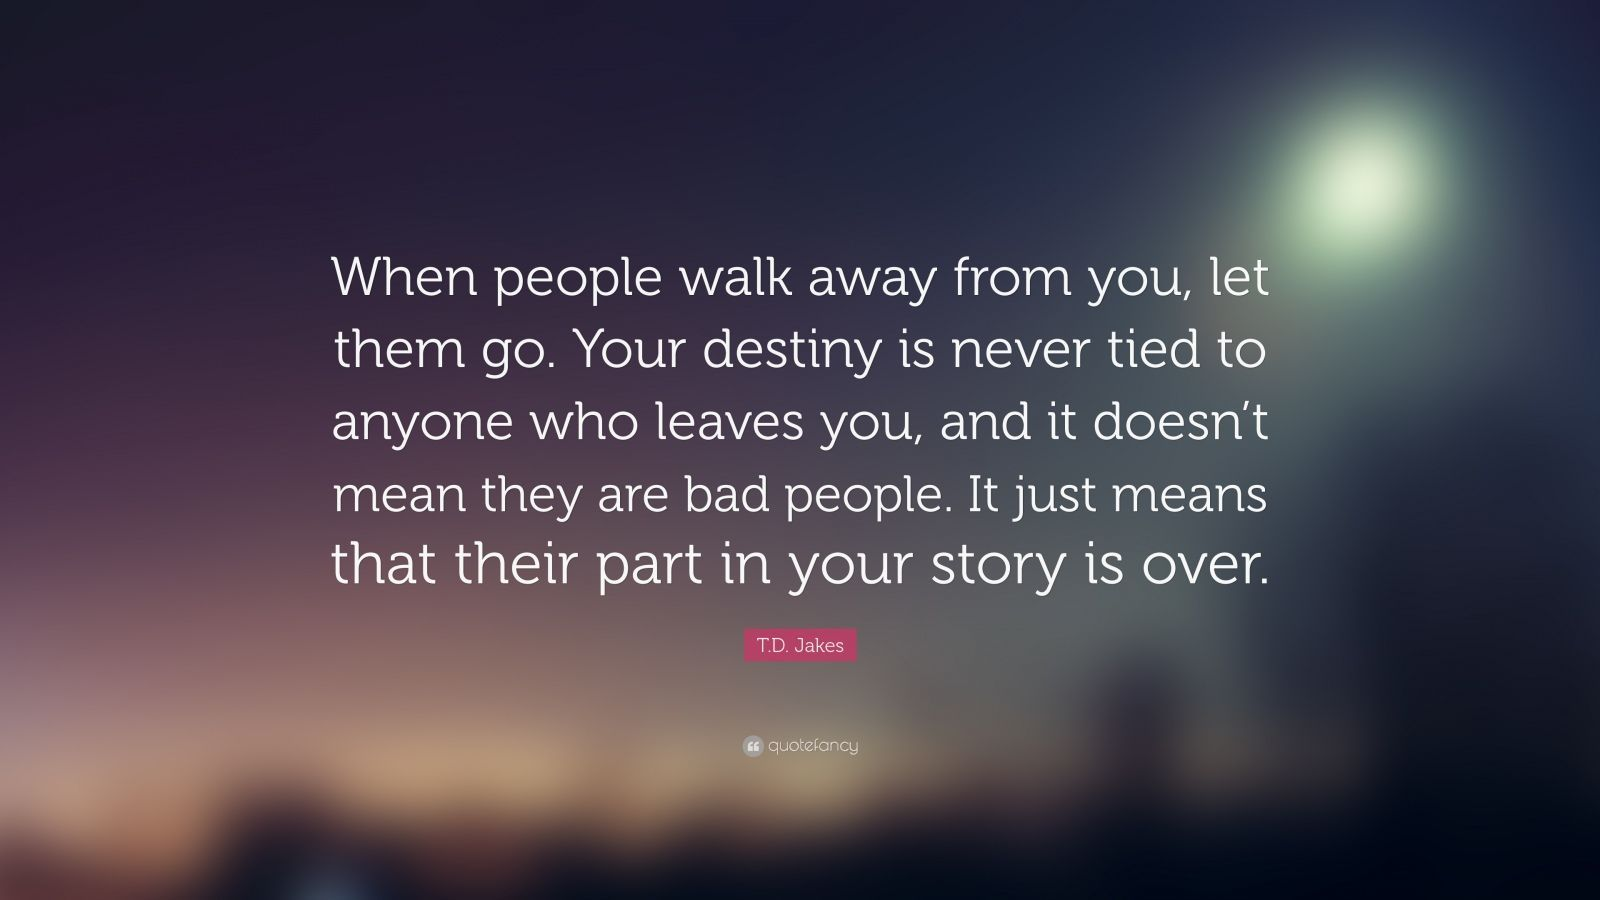 T D Jakes Quote When People Walk Away From You Let Them Go Your Destiny Is Never Tied To Anyone Who Leaves You Walk Away Quotes Quotes Be Yourself Quotes